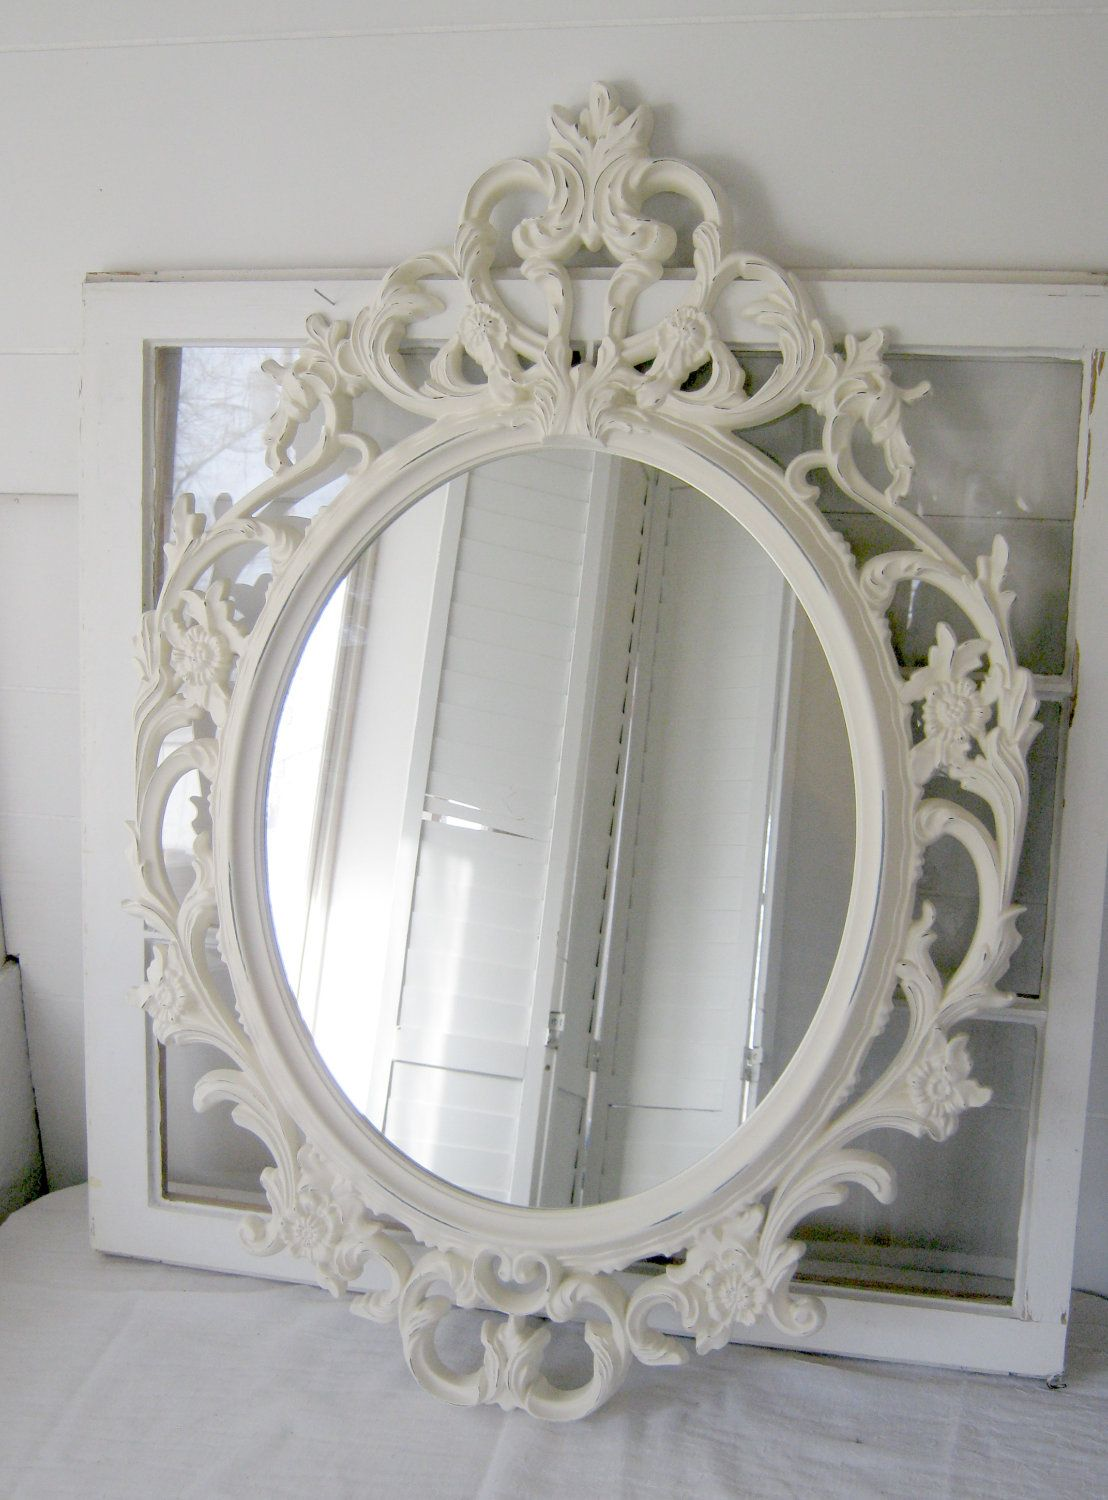 Shabby Chic Baroque Oval Mirror Antique White Ornate